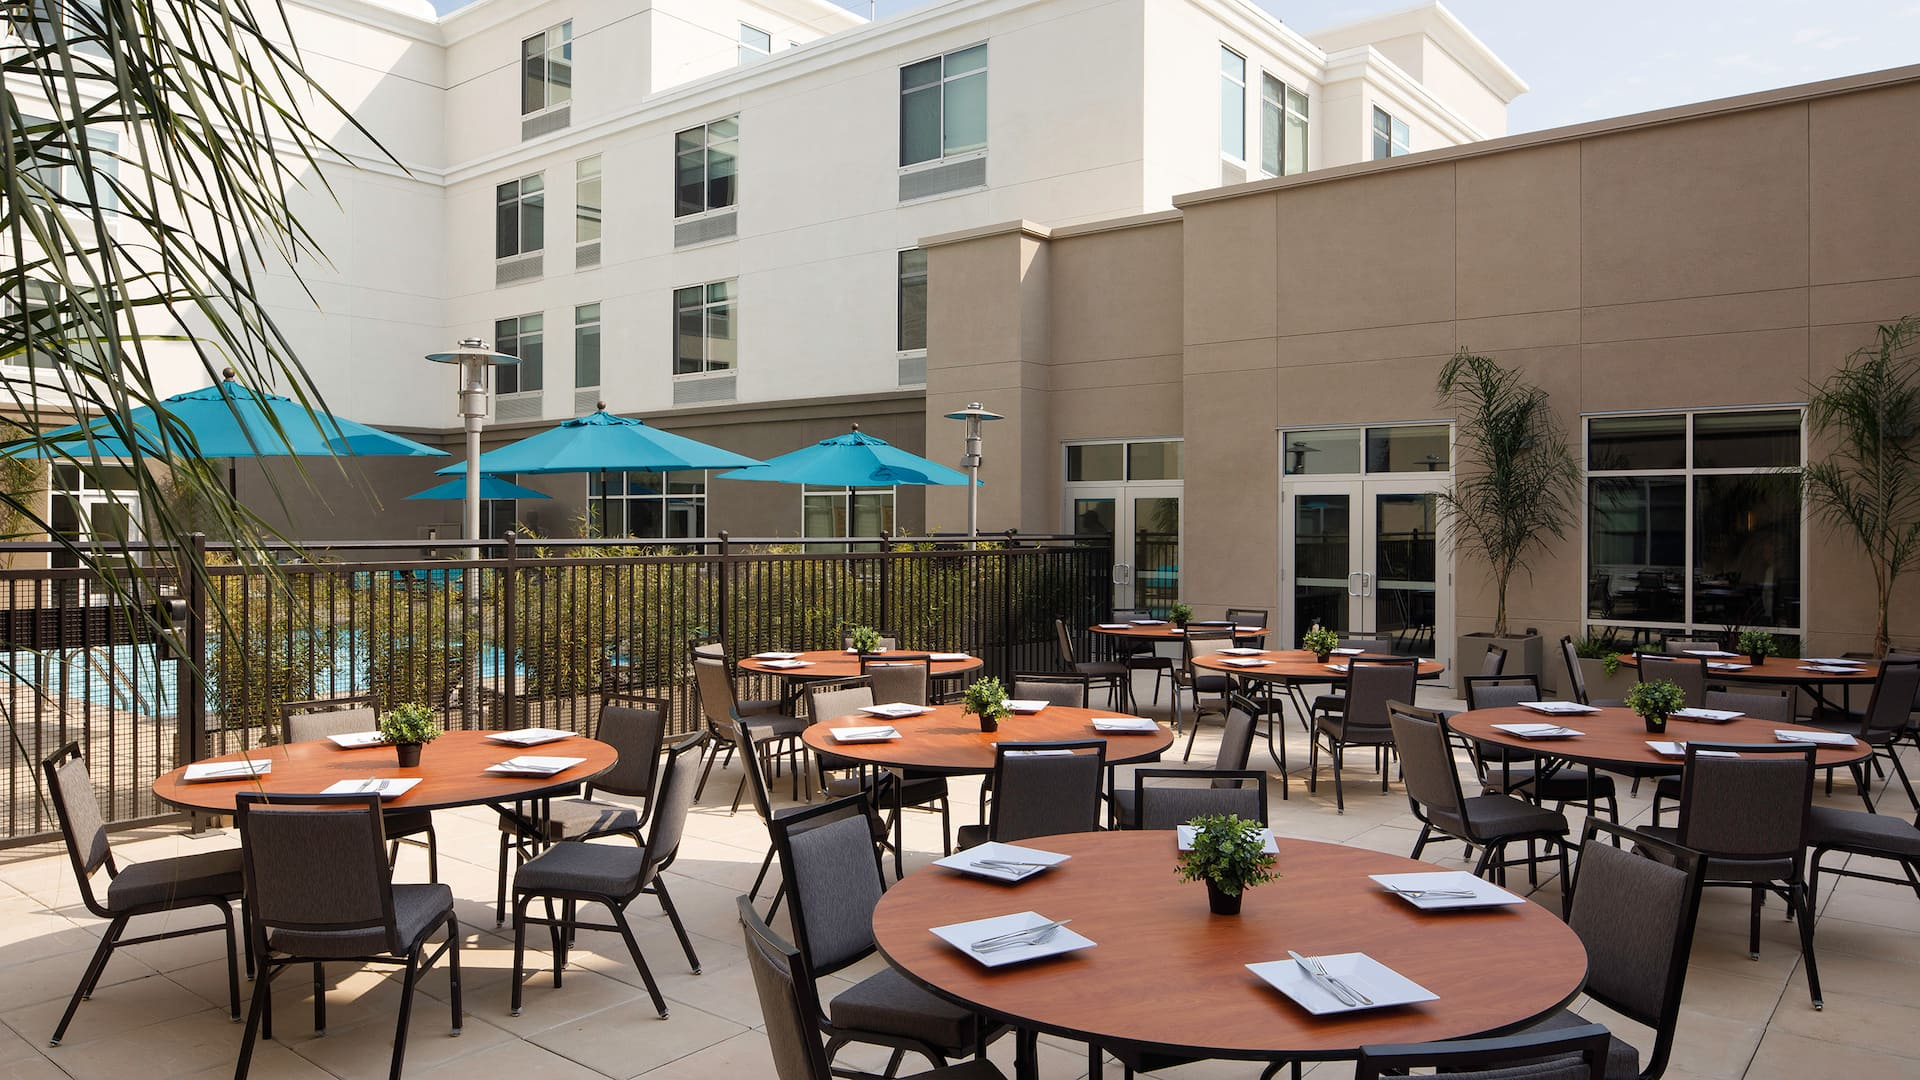 Hyatt Place Santa Cruz Patio Rounds